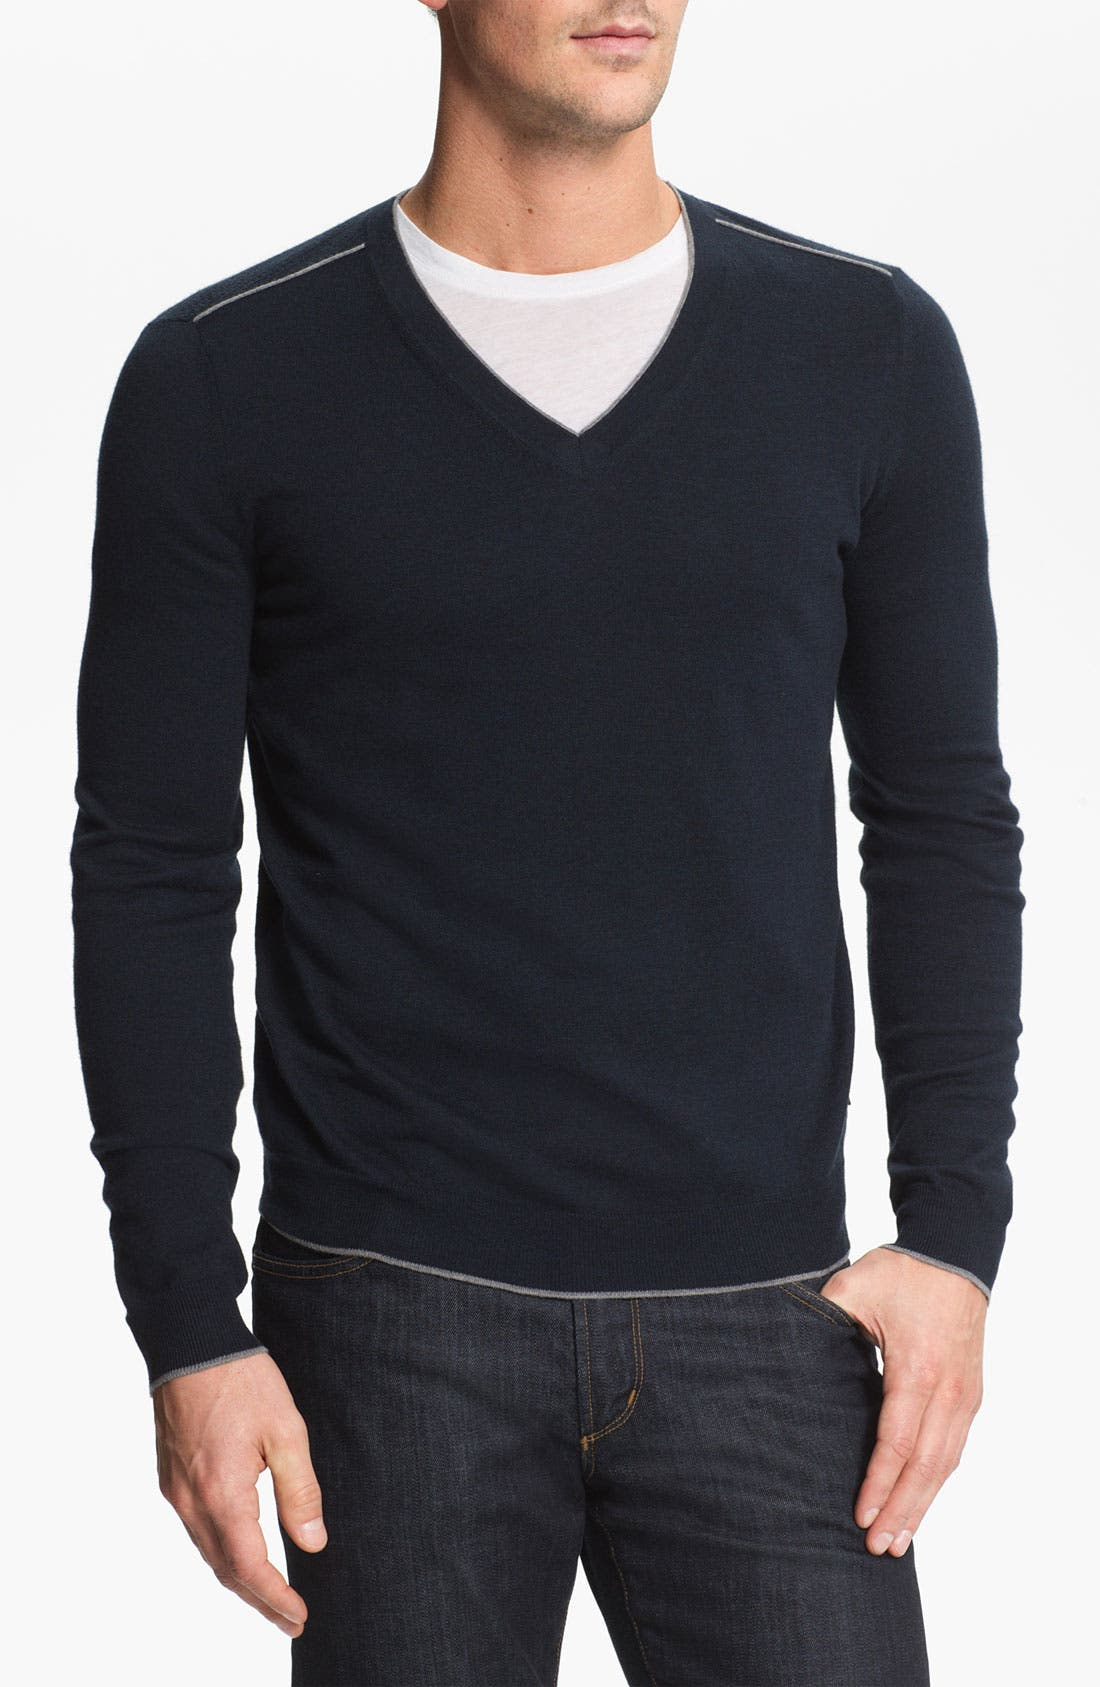 Alternate Image 1 Selected - BOSS Black 'Gary' V-Neck Sweater